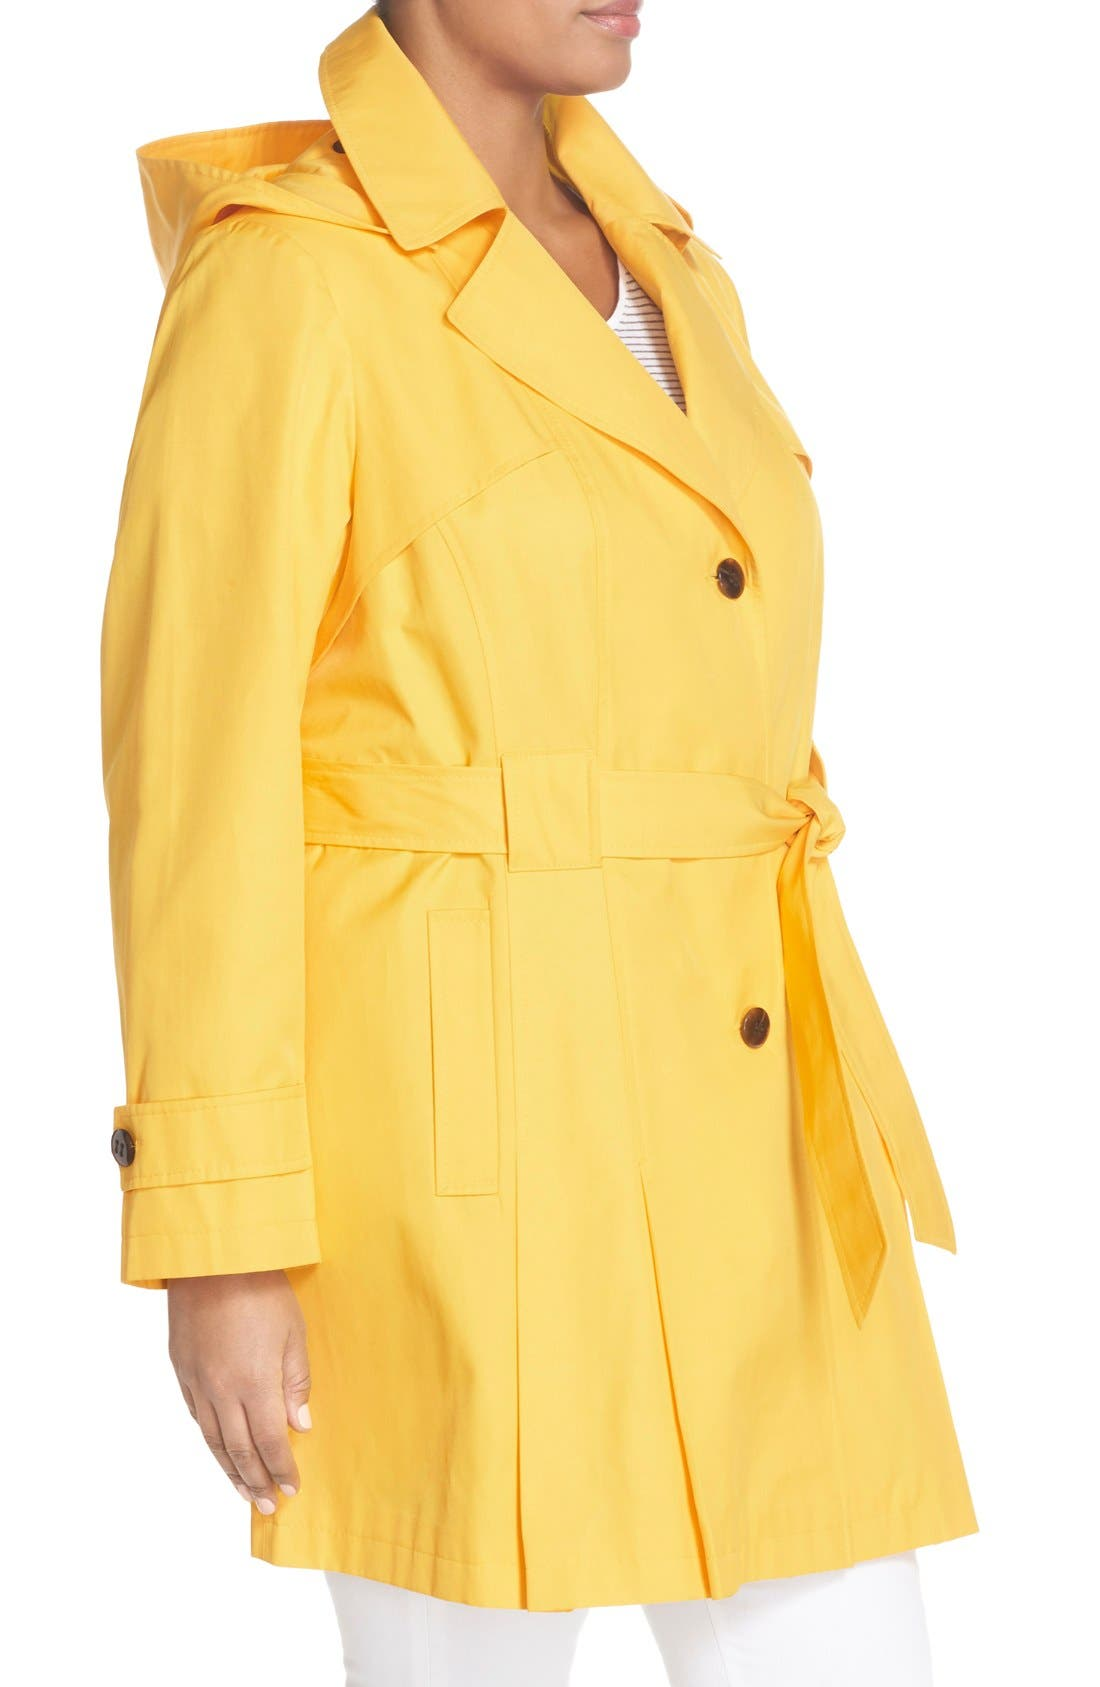 'Scarpa' Single Breasted Trench Coat,                             Alternate thumbnail 12, color,